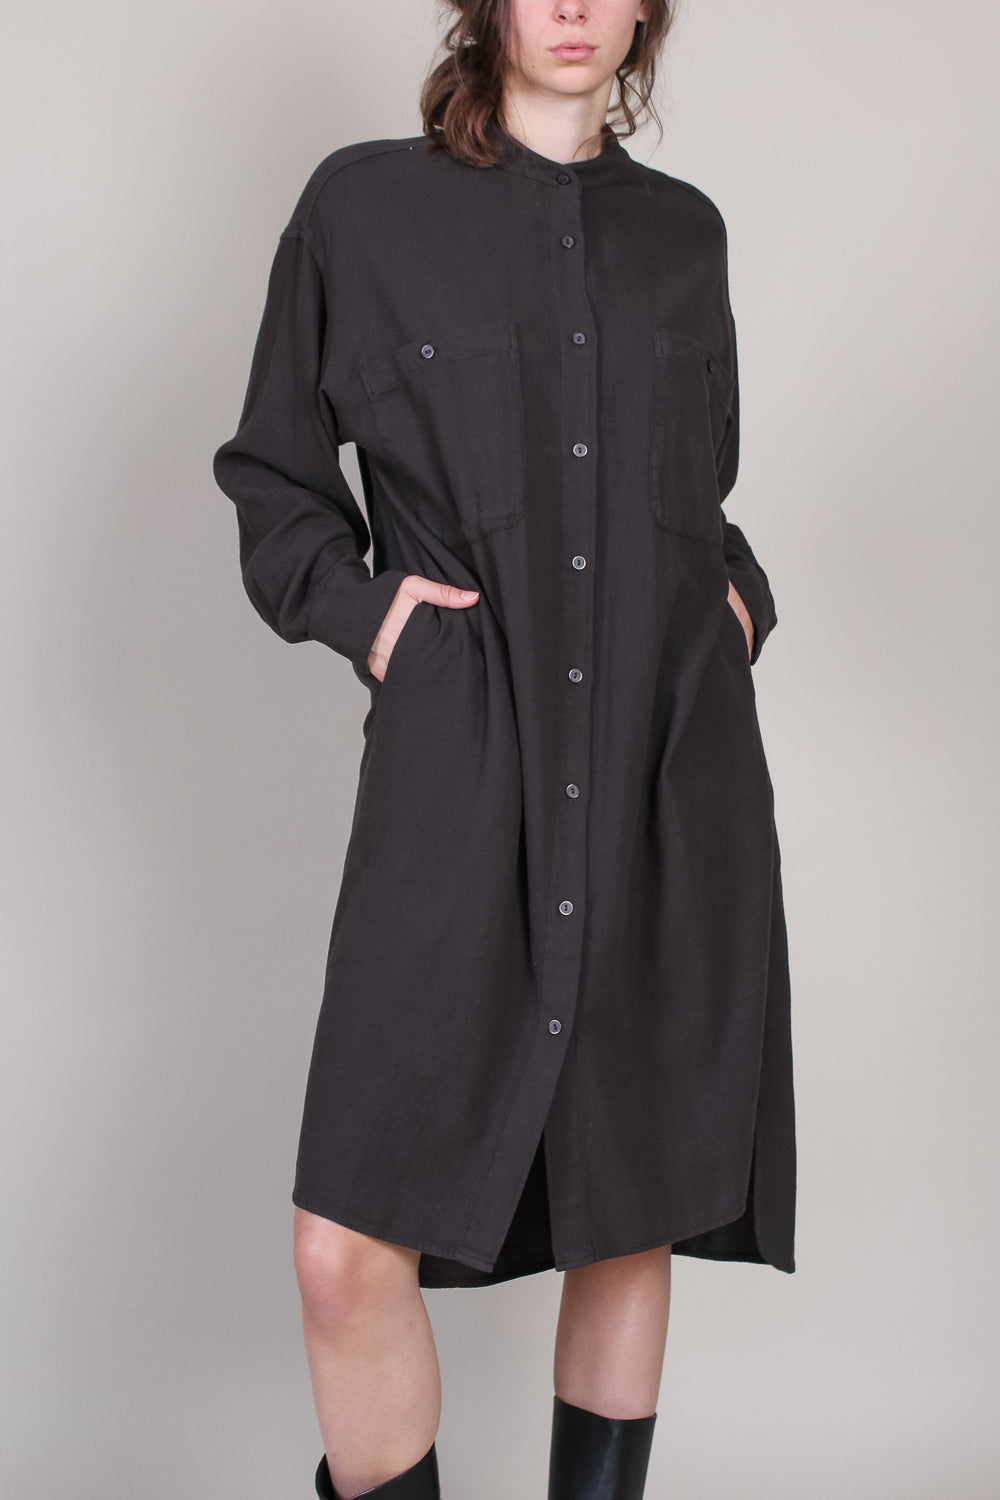 Meca Dress in Dark Grey